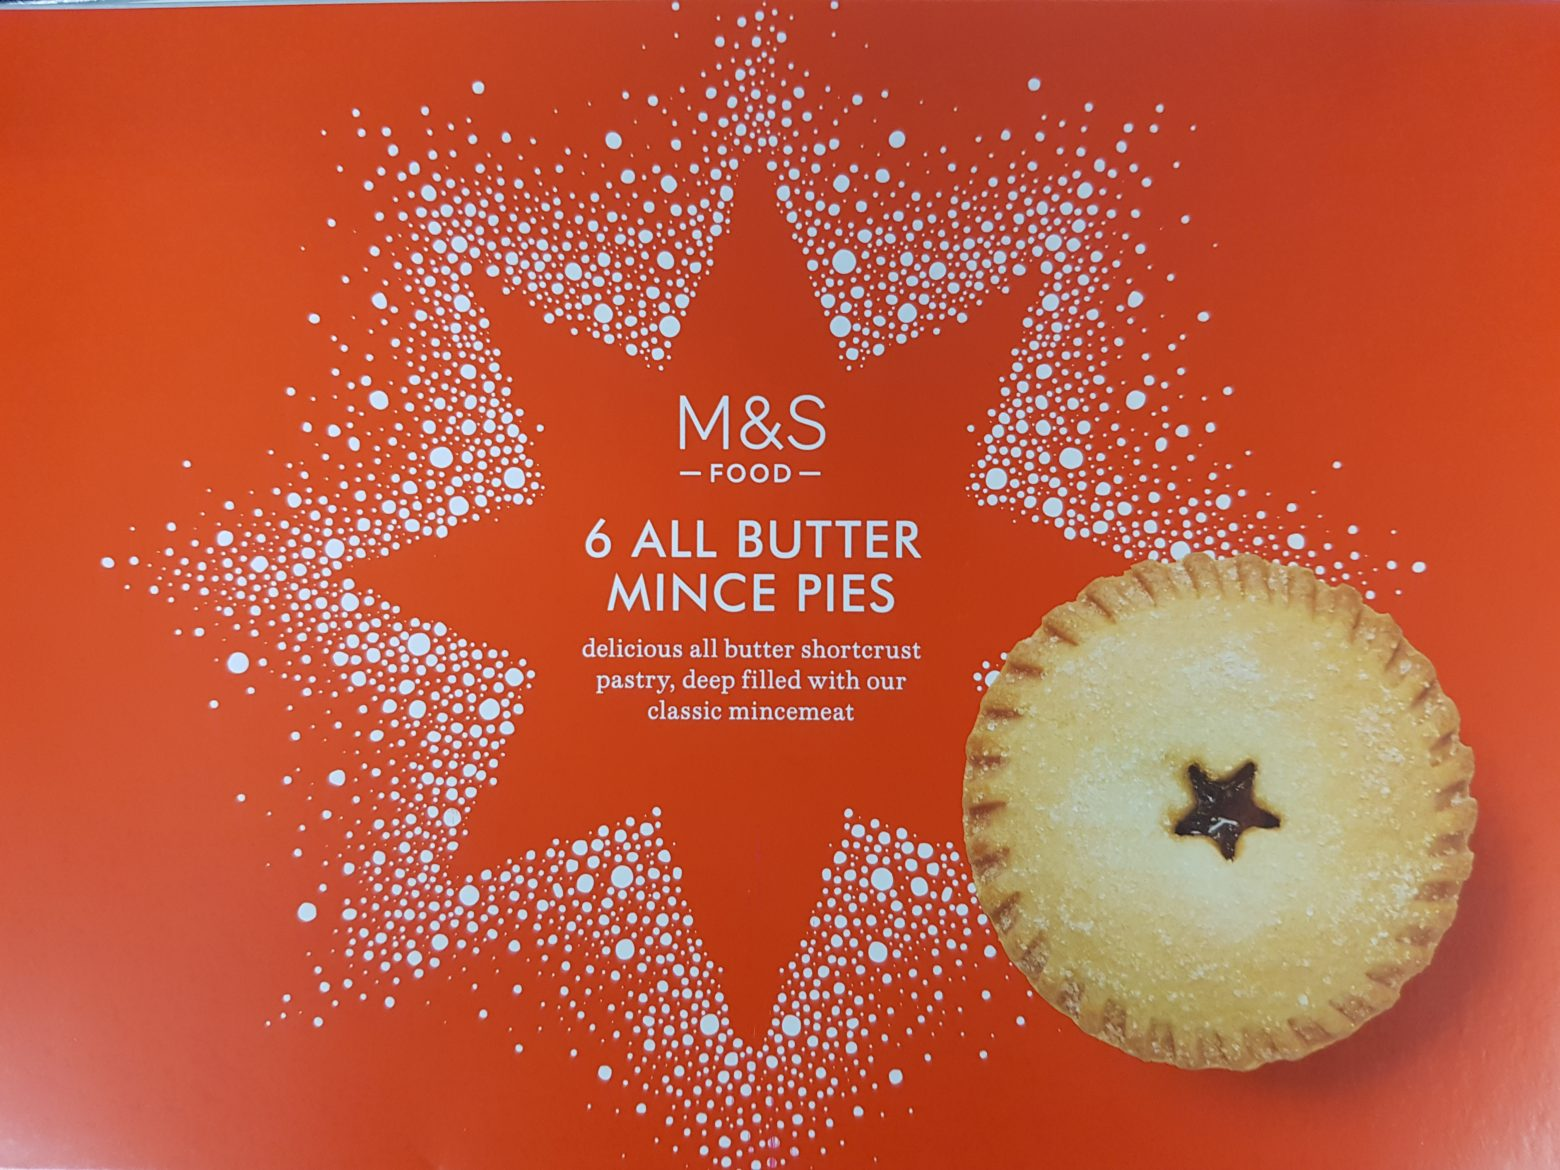 Marks & Spencer All Butter Mince Pie Review 2019